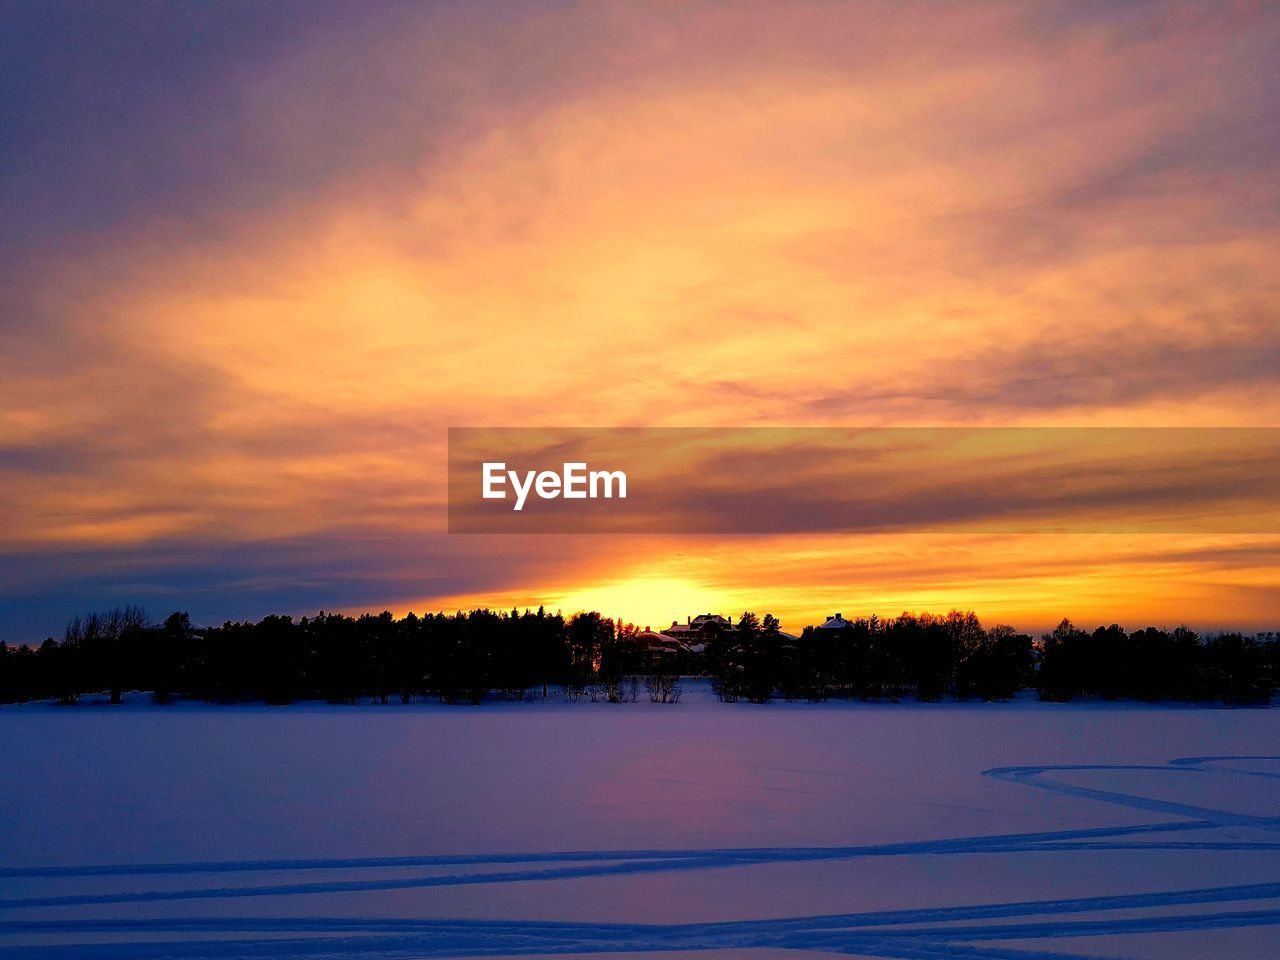 sky, sunset, cloud - sky, beauty in nature, scenics - nature, winter, cold temperature, tree, tranquil scene, tranquility, orange color, snow, plant, nature, no people, silhouette, environment, landscape, non-urban scene, outdoors, romantic sky